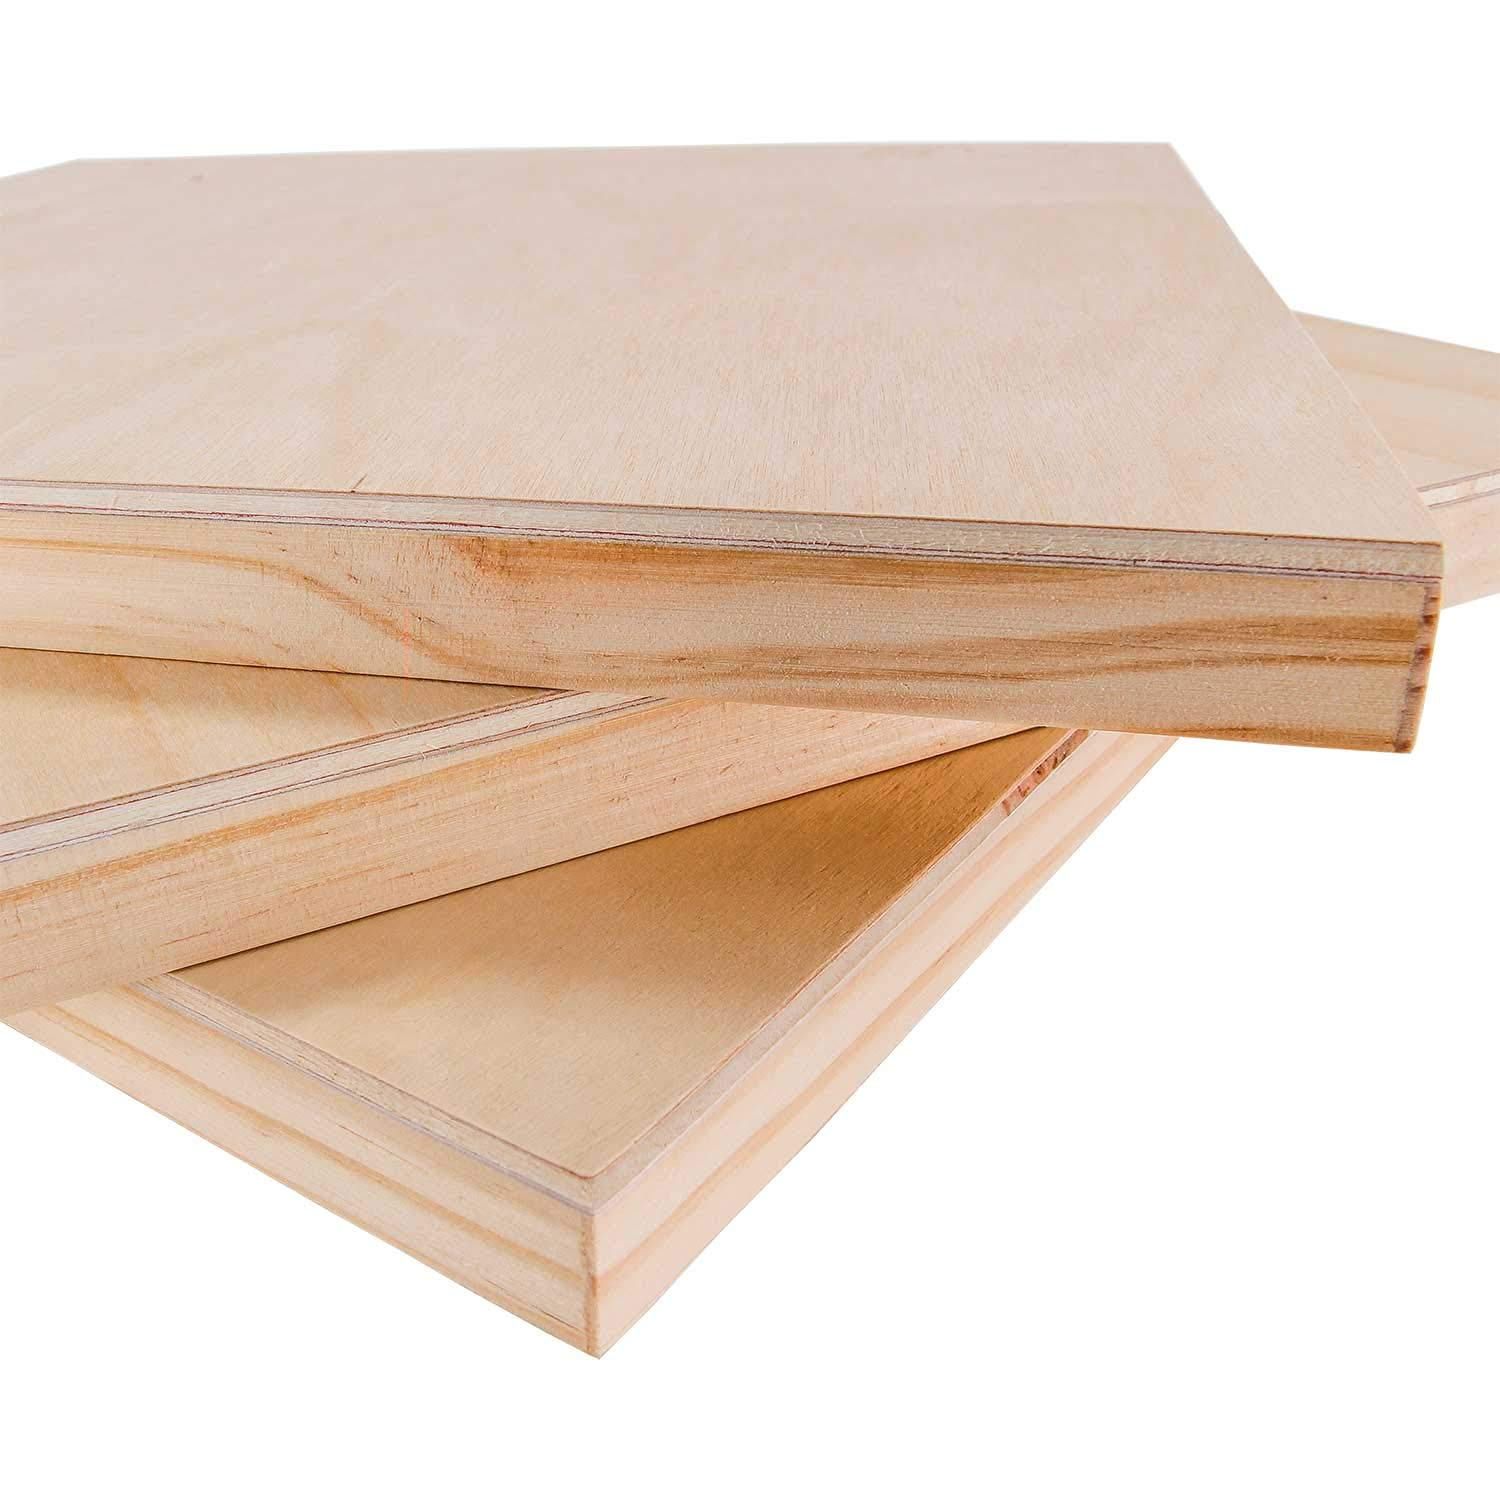 Studio 3//4 Deep Cradle Watercolor Encaustic Painting Mixed-Media Craft Acrylic - Artist Wooden Wall Canvases U.S Oil Pack of 3 Art Supply 11 x 14 Birch Wood Paint Pouring Panel Boards